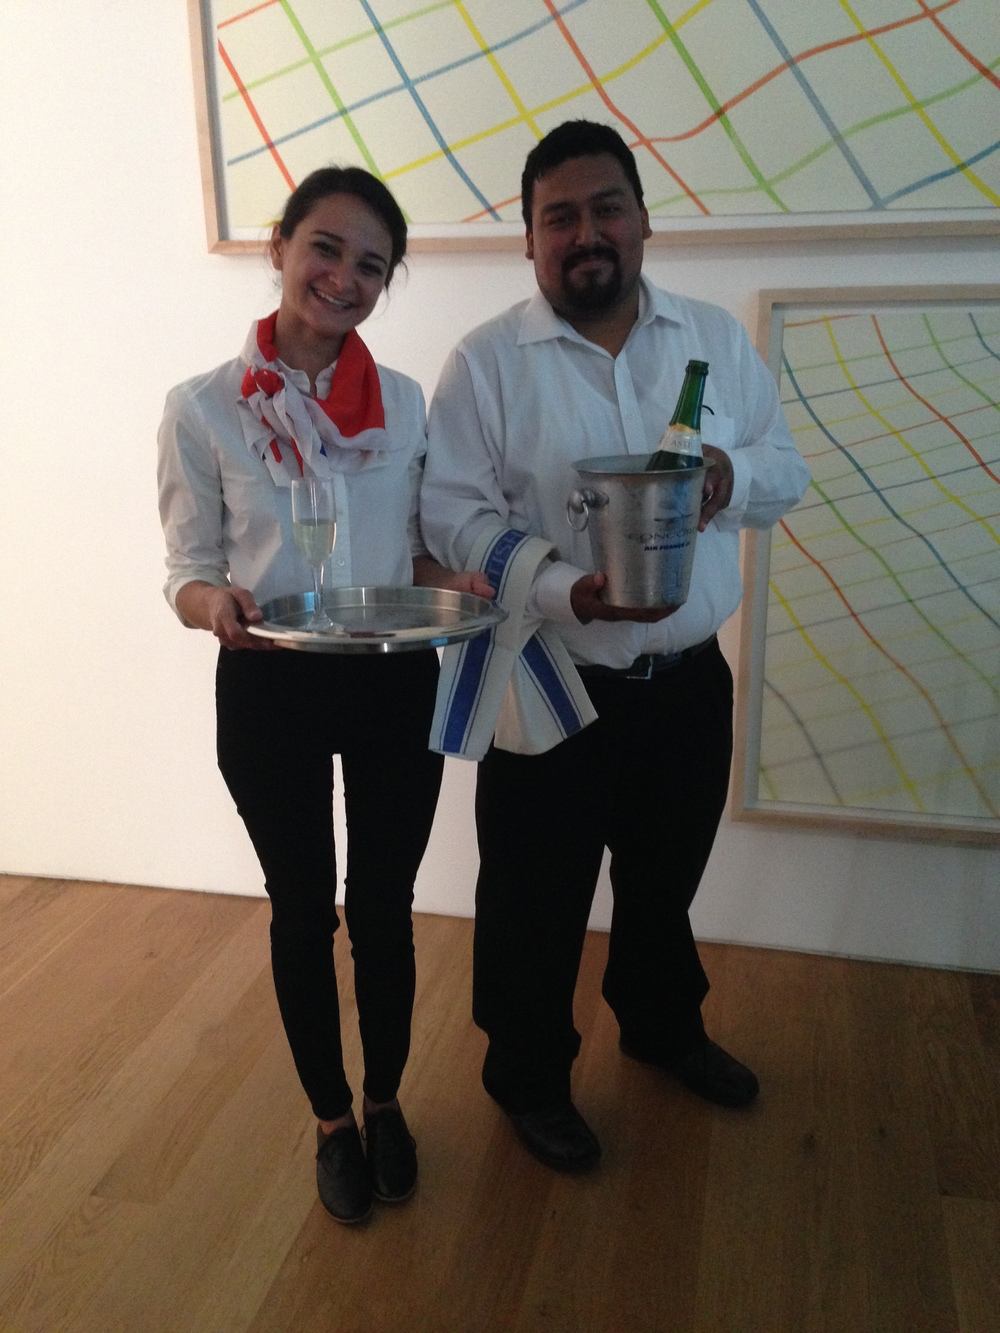 Flight crew for the Concorde session Marlene Franco and Rene Quintanilla. Champagne served to our guests for this talk with Air France Concorde glasses and Champagne buckets.